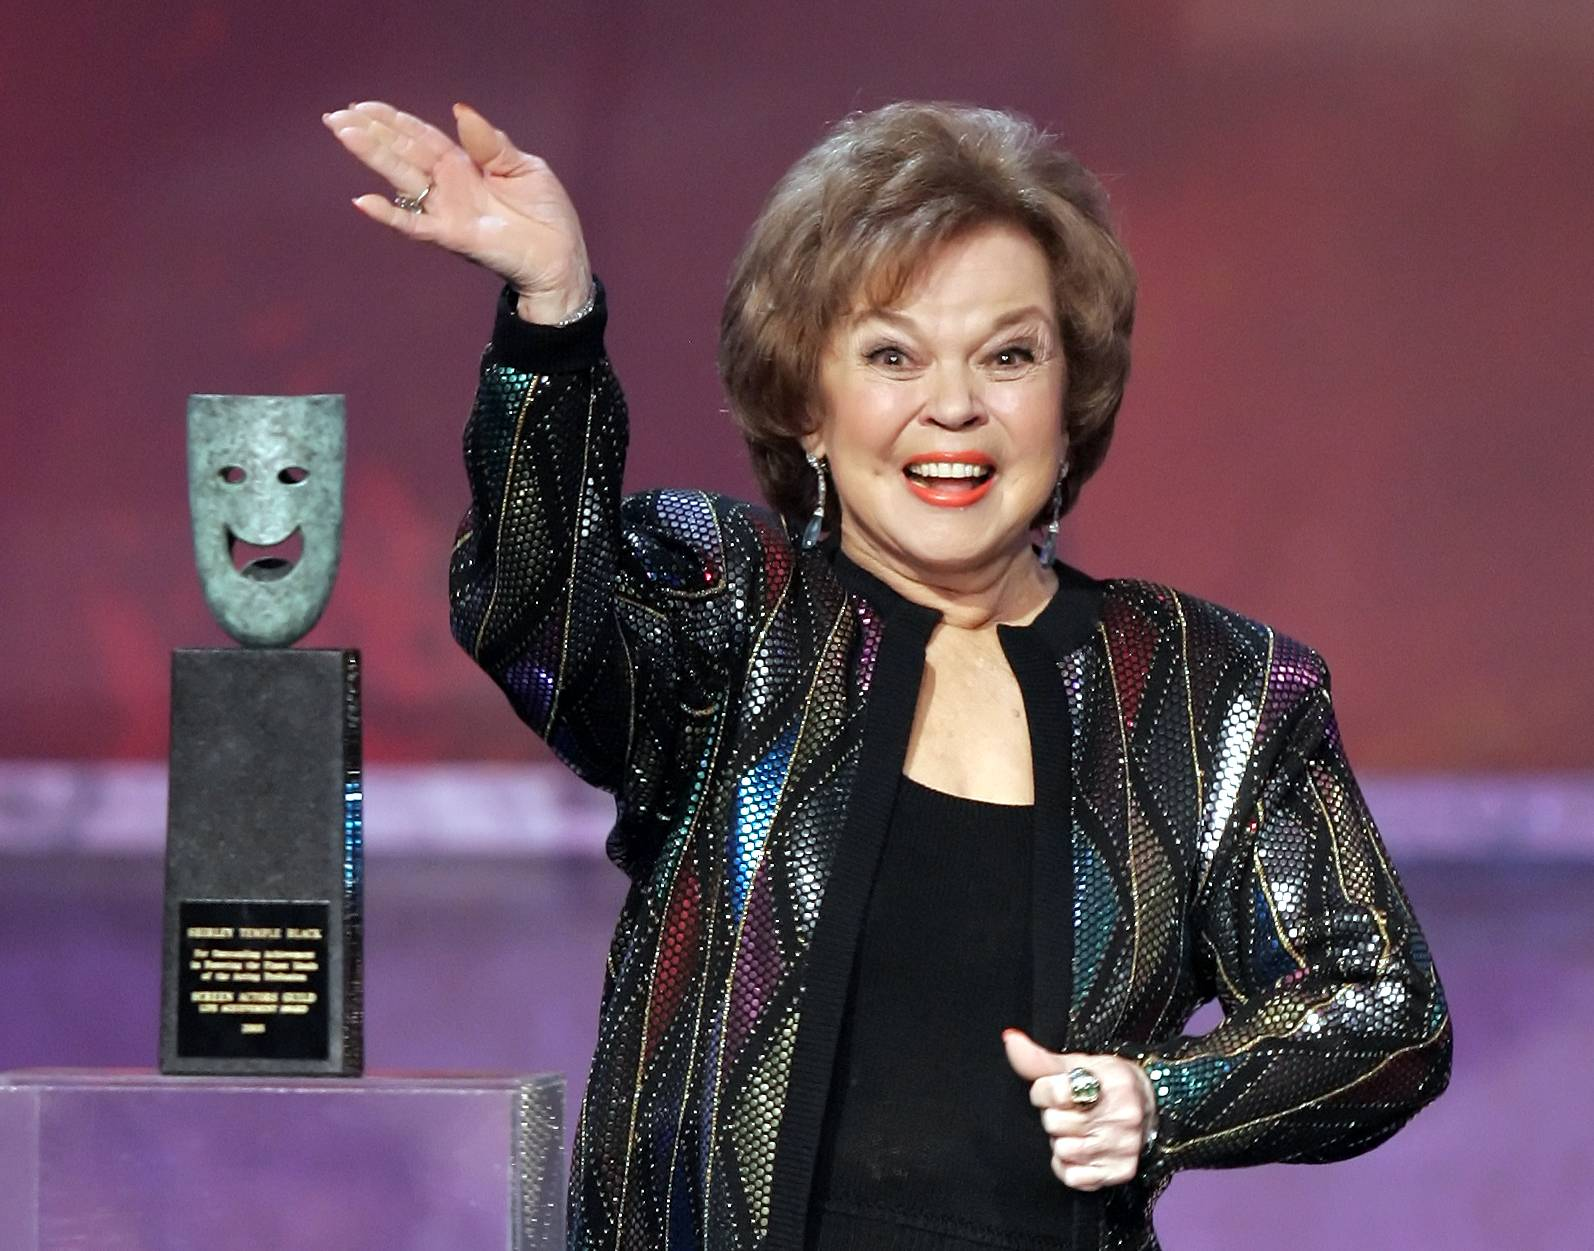 Shirley Temple Black accepts the Screen Actors Guild Awards life achievement award at the 12th Annual Screen Actors Guild Awards, in Los Angeles. Temple, the curly-haired child star who put smiles on the faces of Depression-era moviegoers, has died. She was 85.